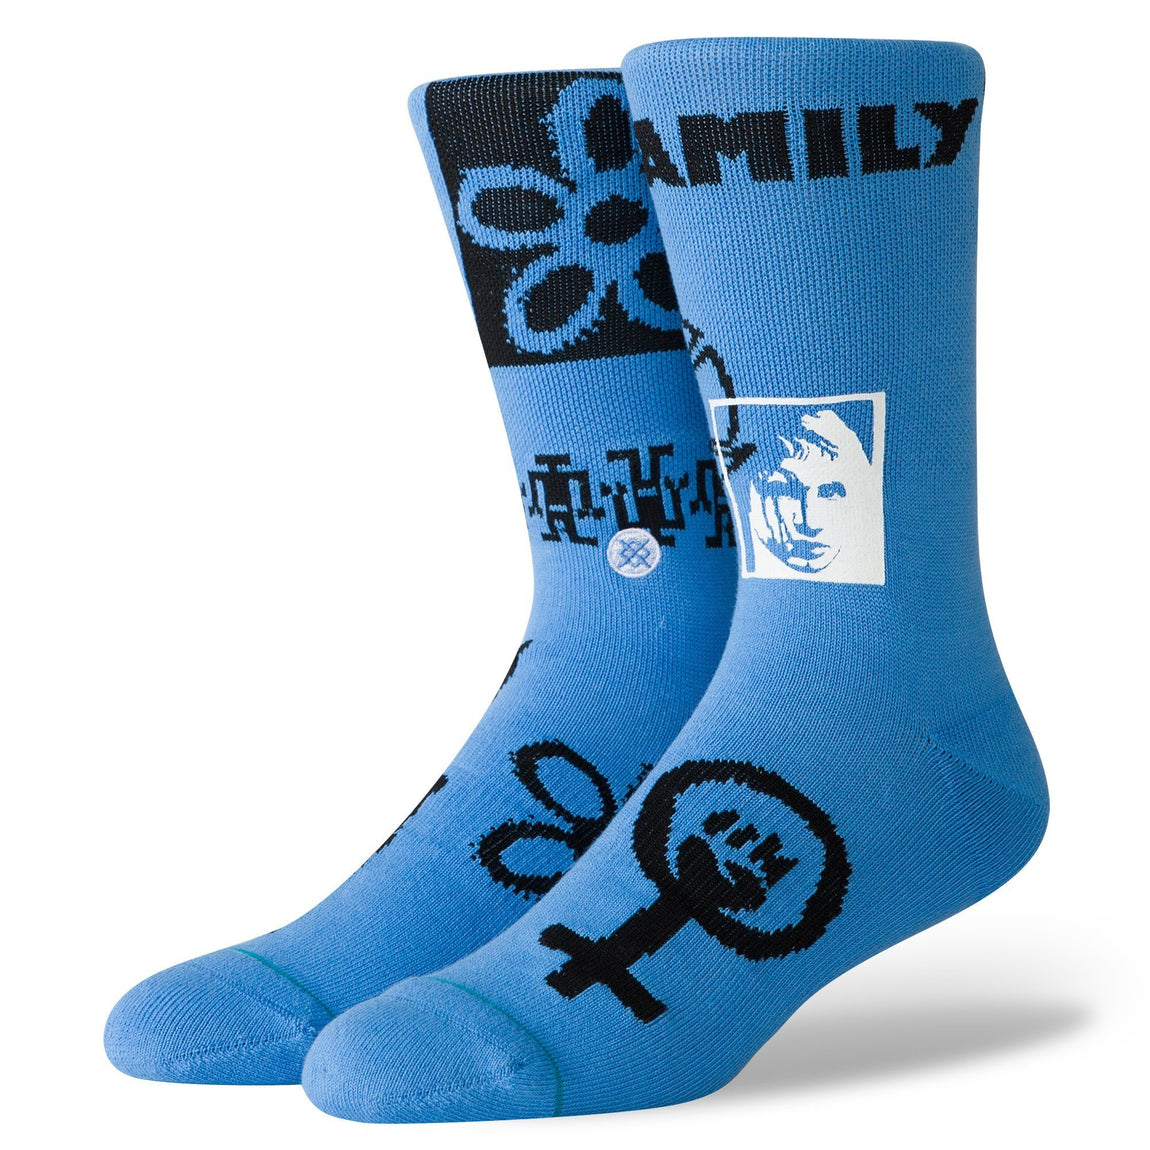 Stance Rebel Socks (Blue) - Stance Rebel Socks (Blue) -